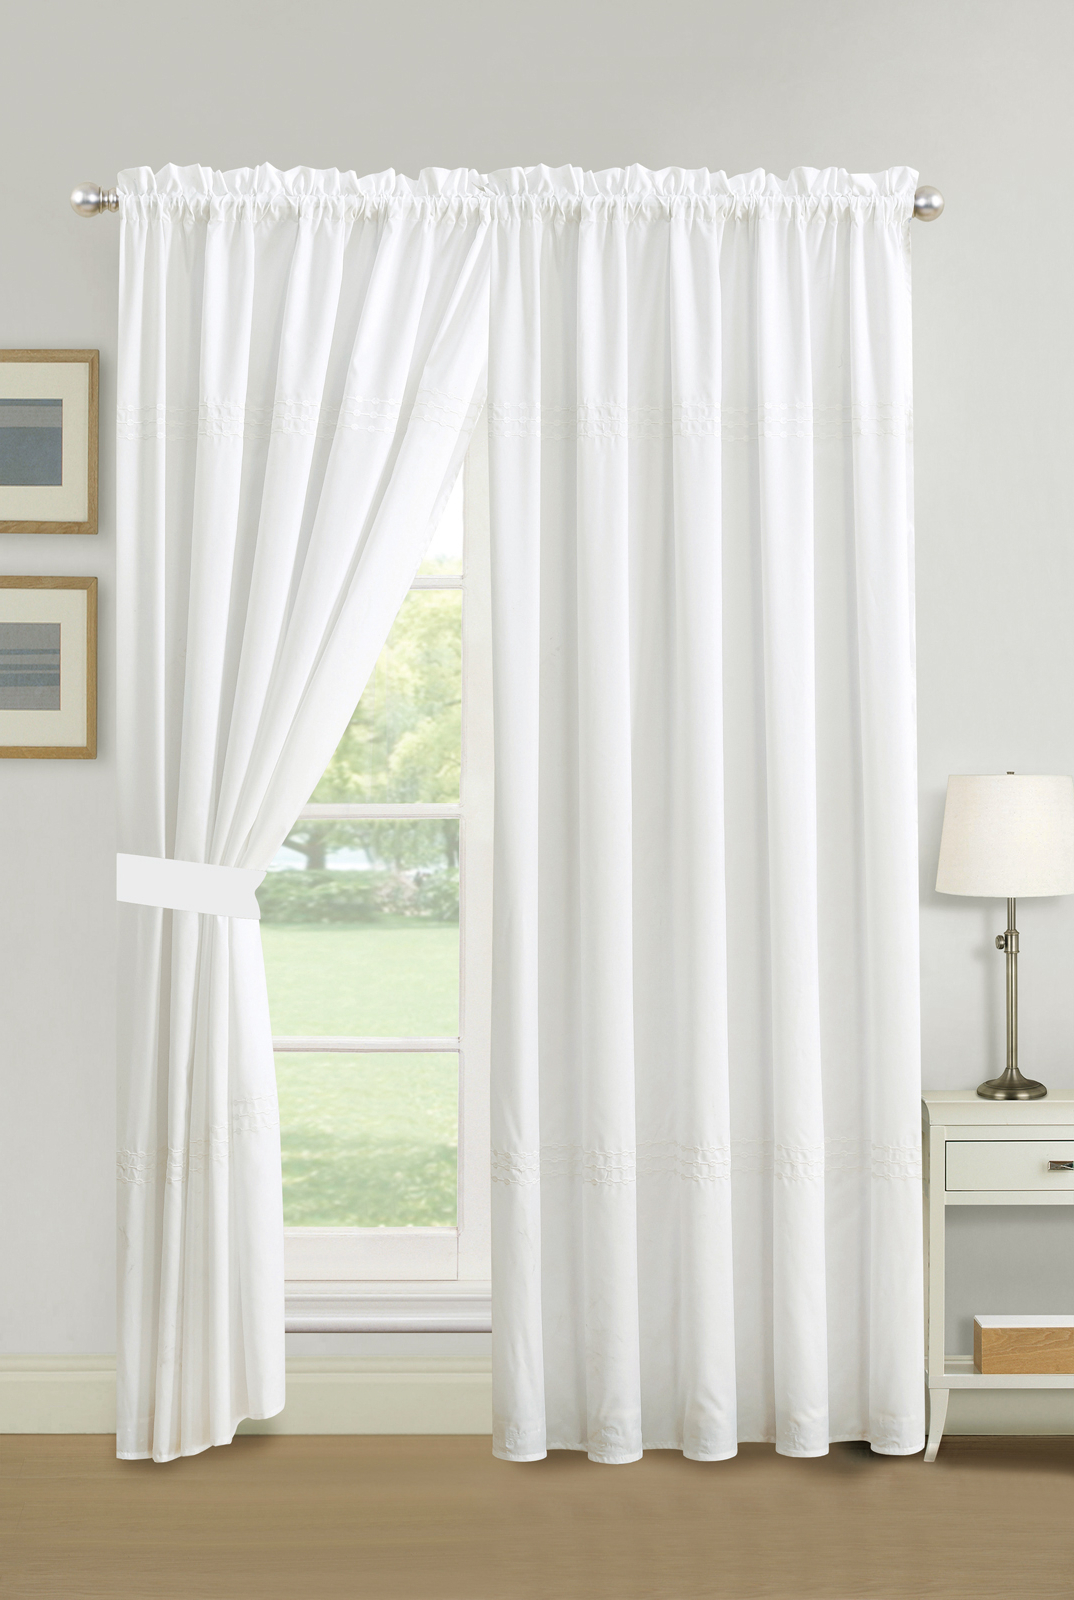 Circle Curtain Valances With Regard To Fashionable Details About 4 Pc Cedar Line Connected Dot Circle Embroidery Curtain Set  White Sheer Liner (View 6 of 20)